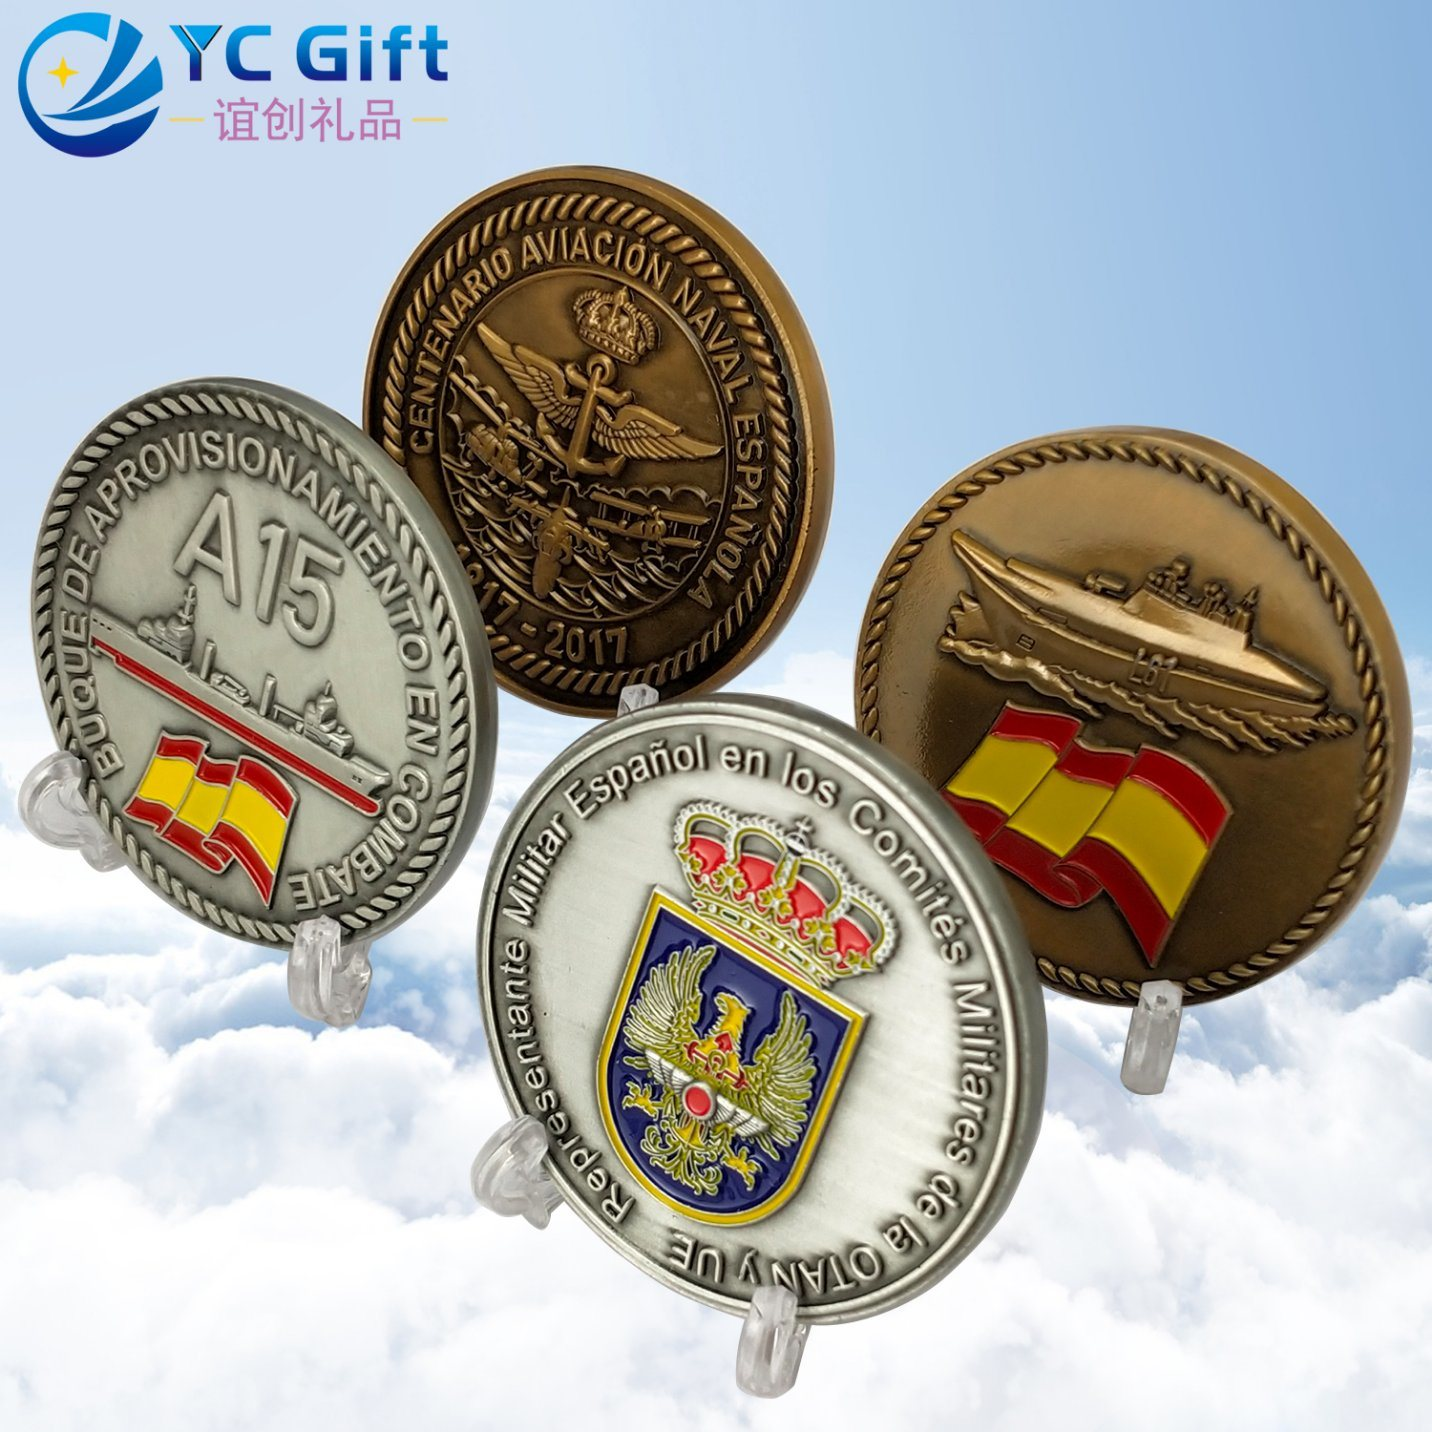 Custom Zinc Alloy Antique Sliver Bronze Eco-Friendly Challenge Coin Us  Military Navy Honor Award Trophy Metal Coins Supplies Airplane Model Badges  in China - China 3D Coins and Metal Coin price